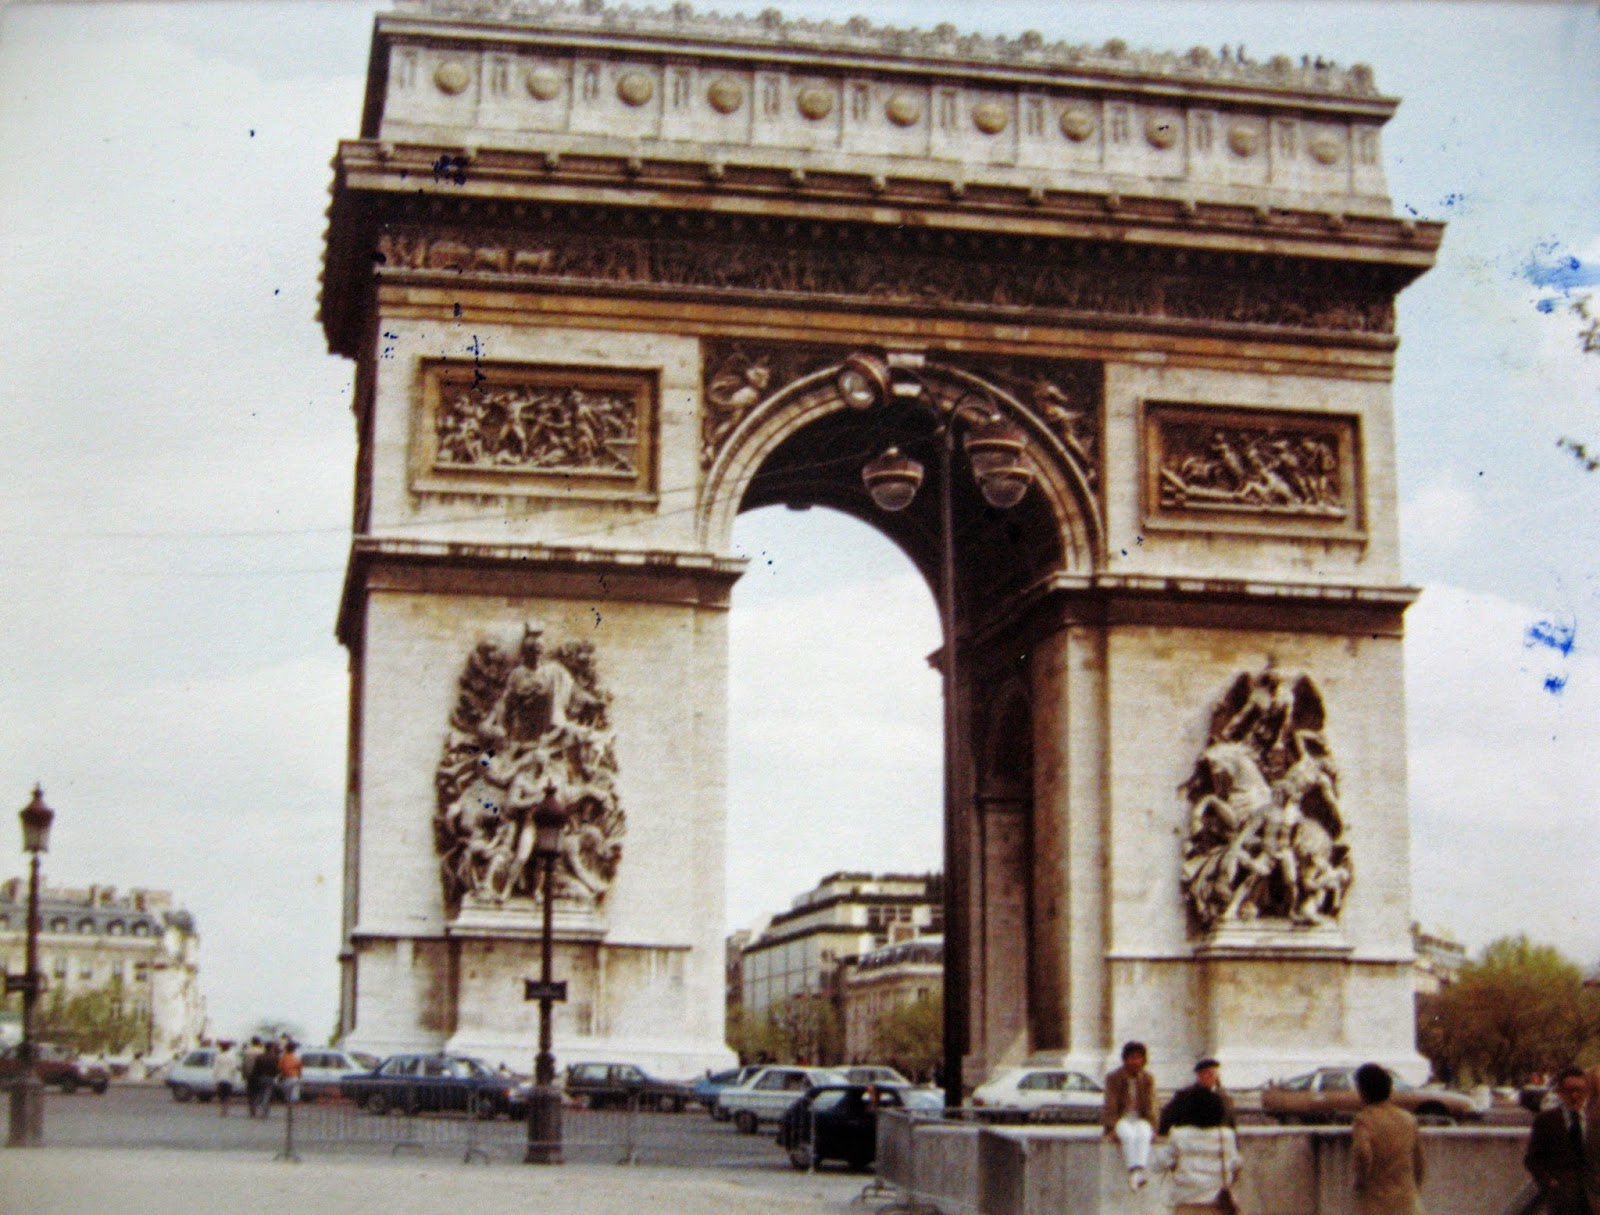 Tommy Mondello & Billy Scire at the Arch of Triumph Paris, France 1983